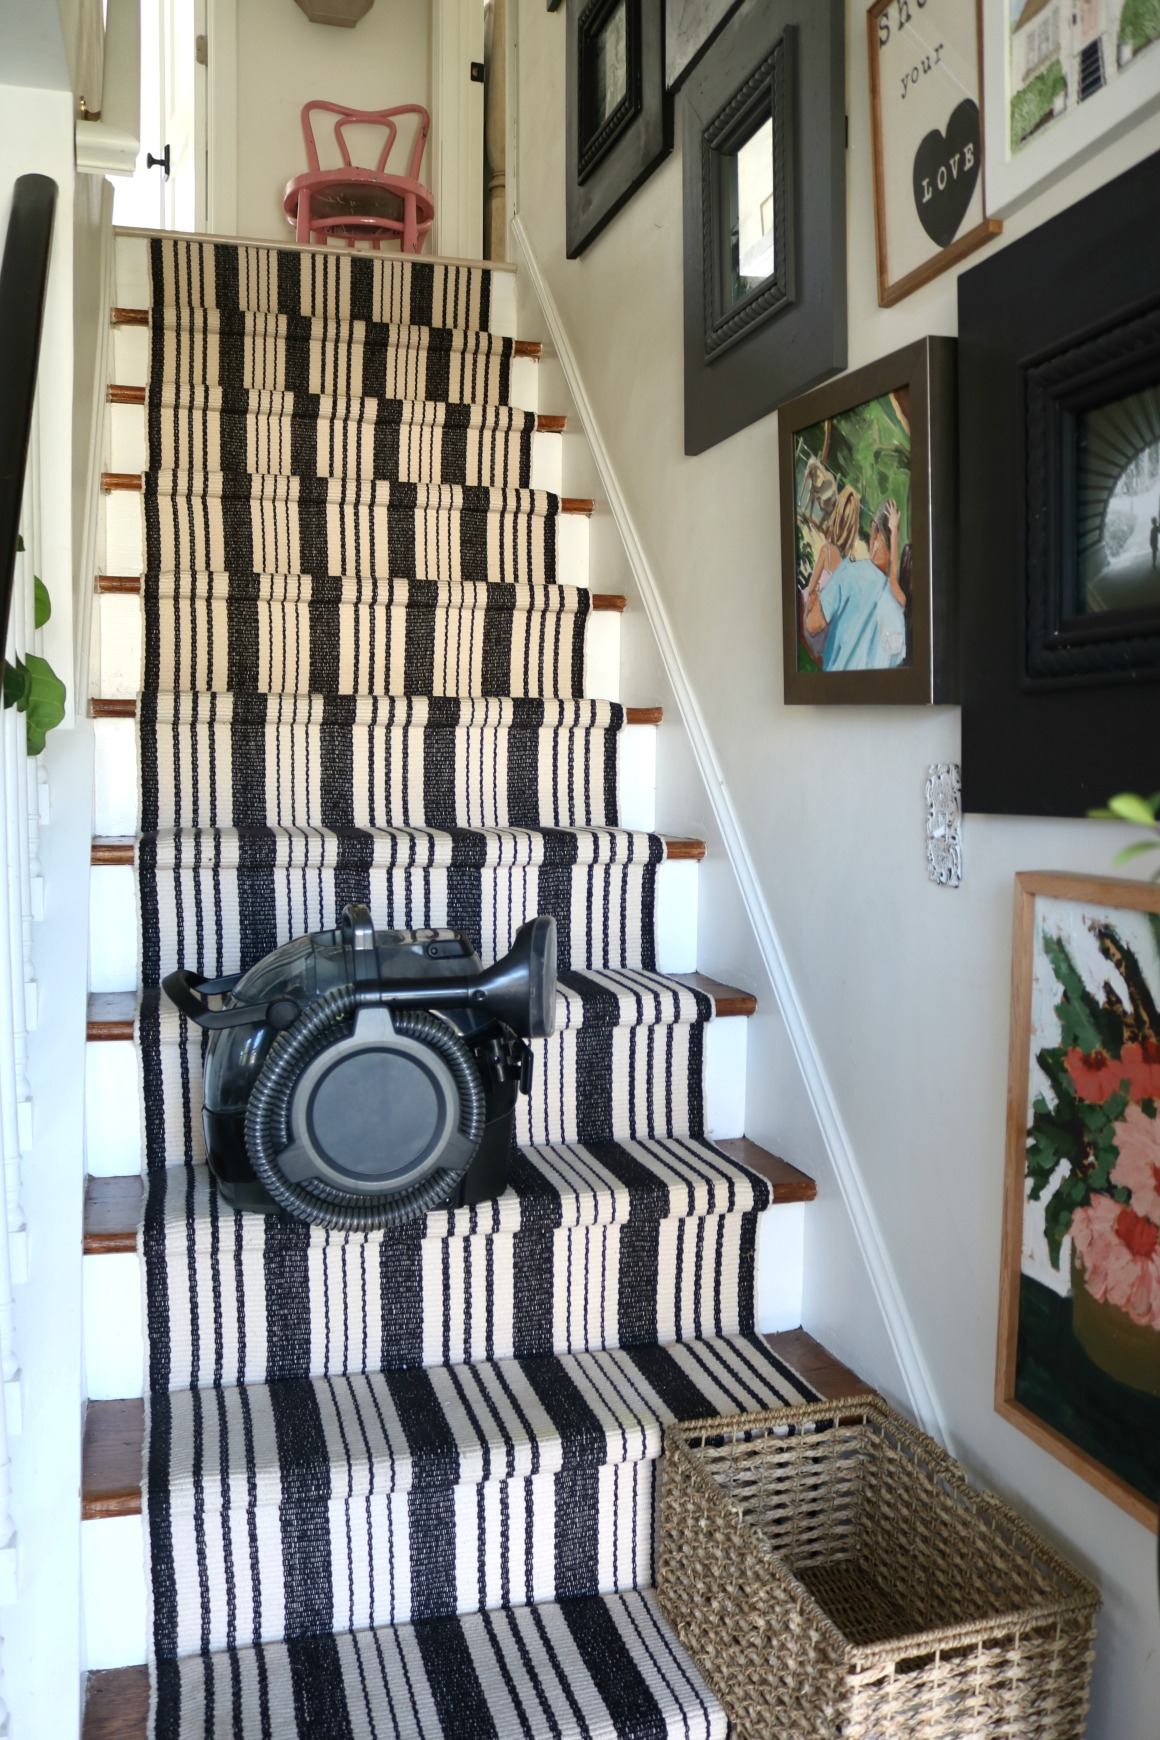 The best spot cleaner for stairs, rugs and cushions!